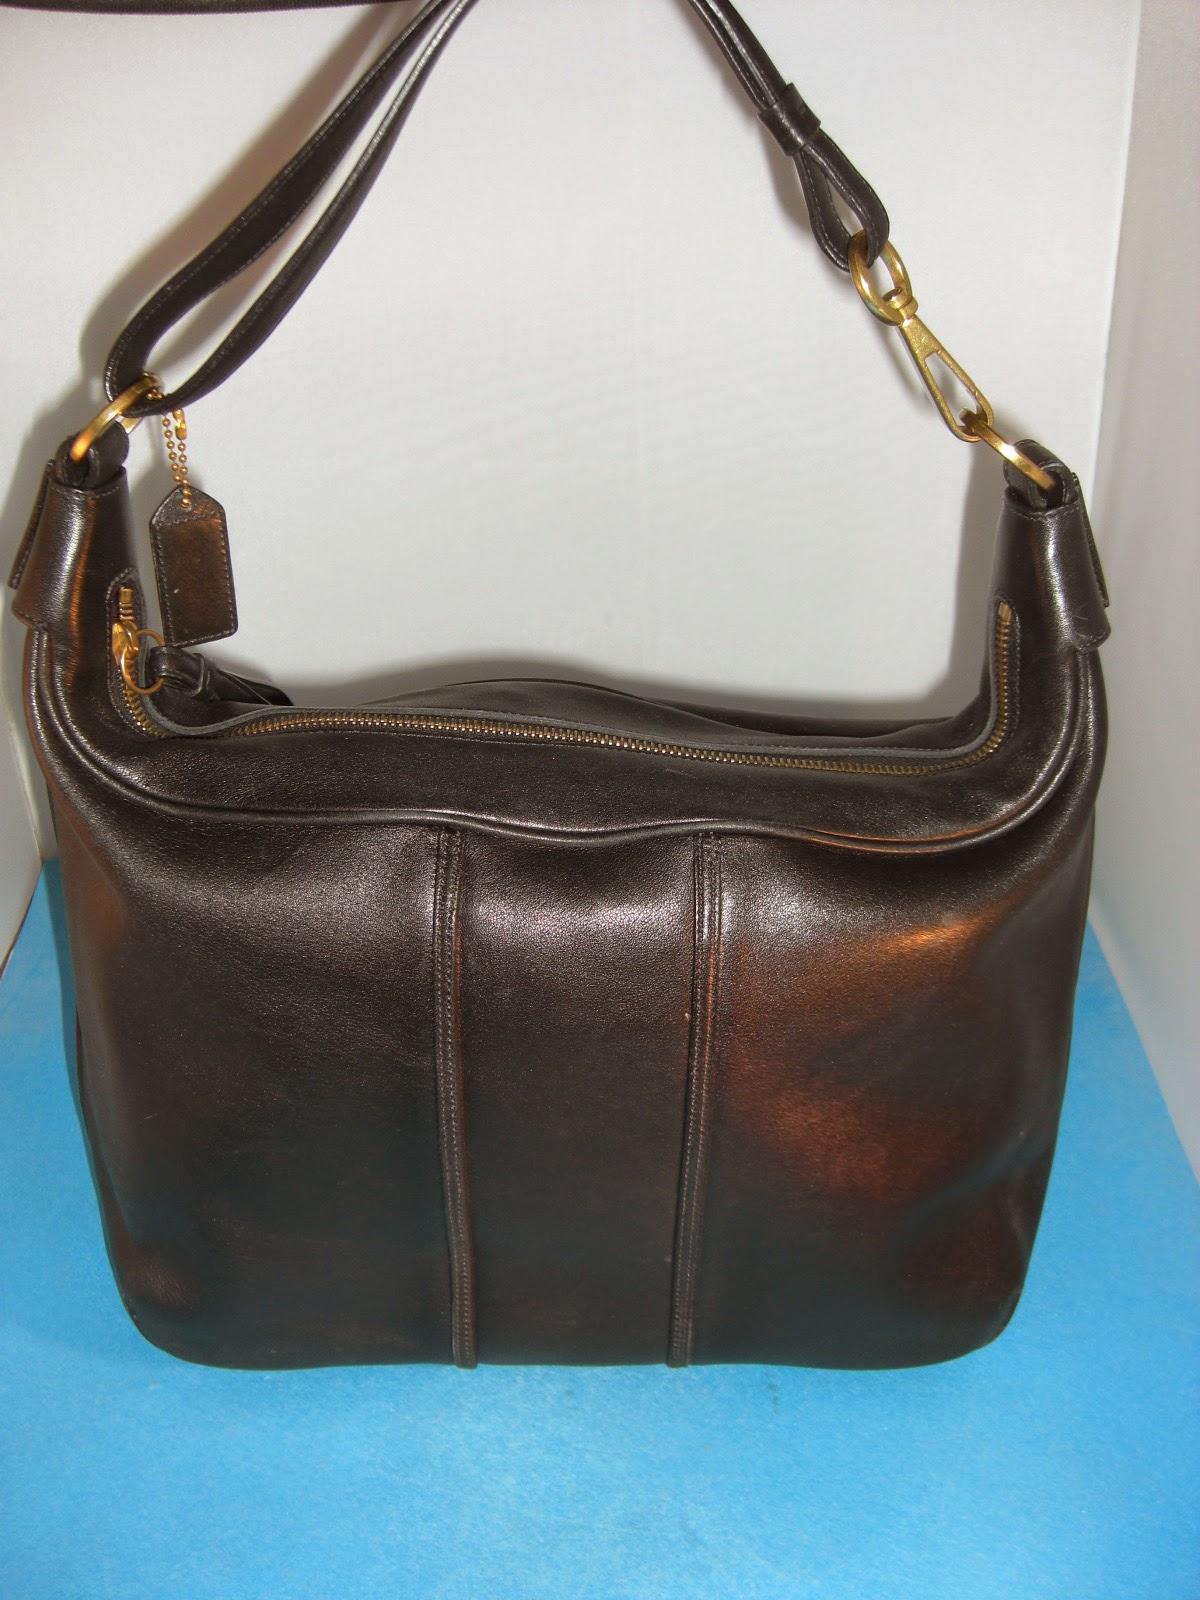 http://bargaincart.ecrater.com/p/22119265/authentic-coach-black-leather-c1s-6951